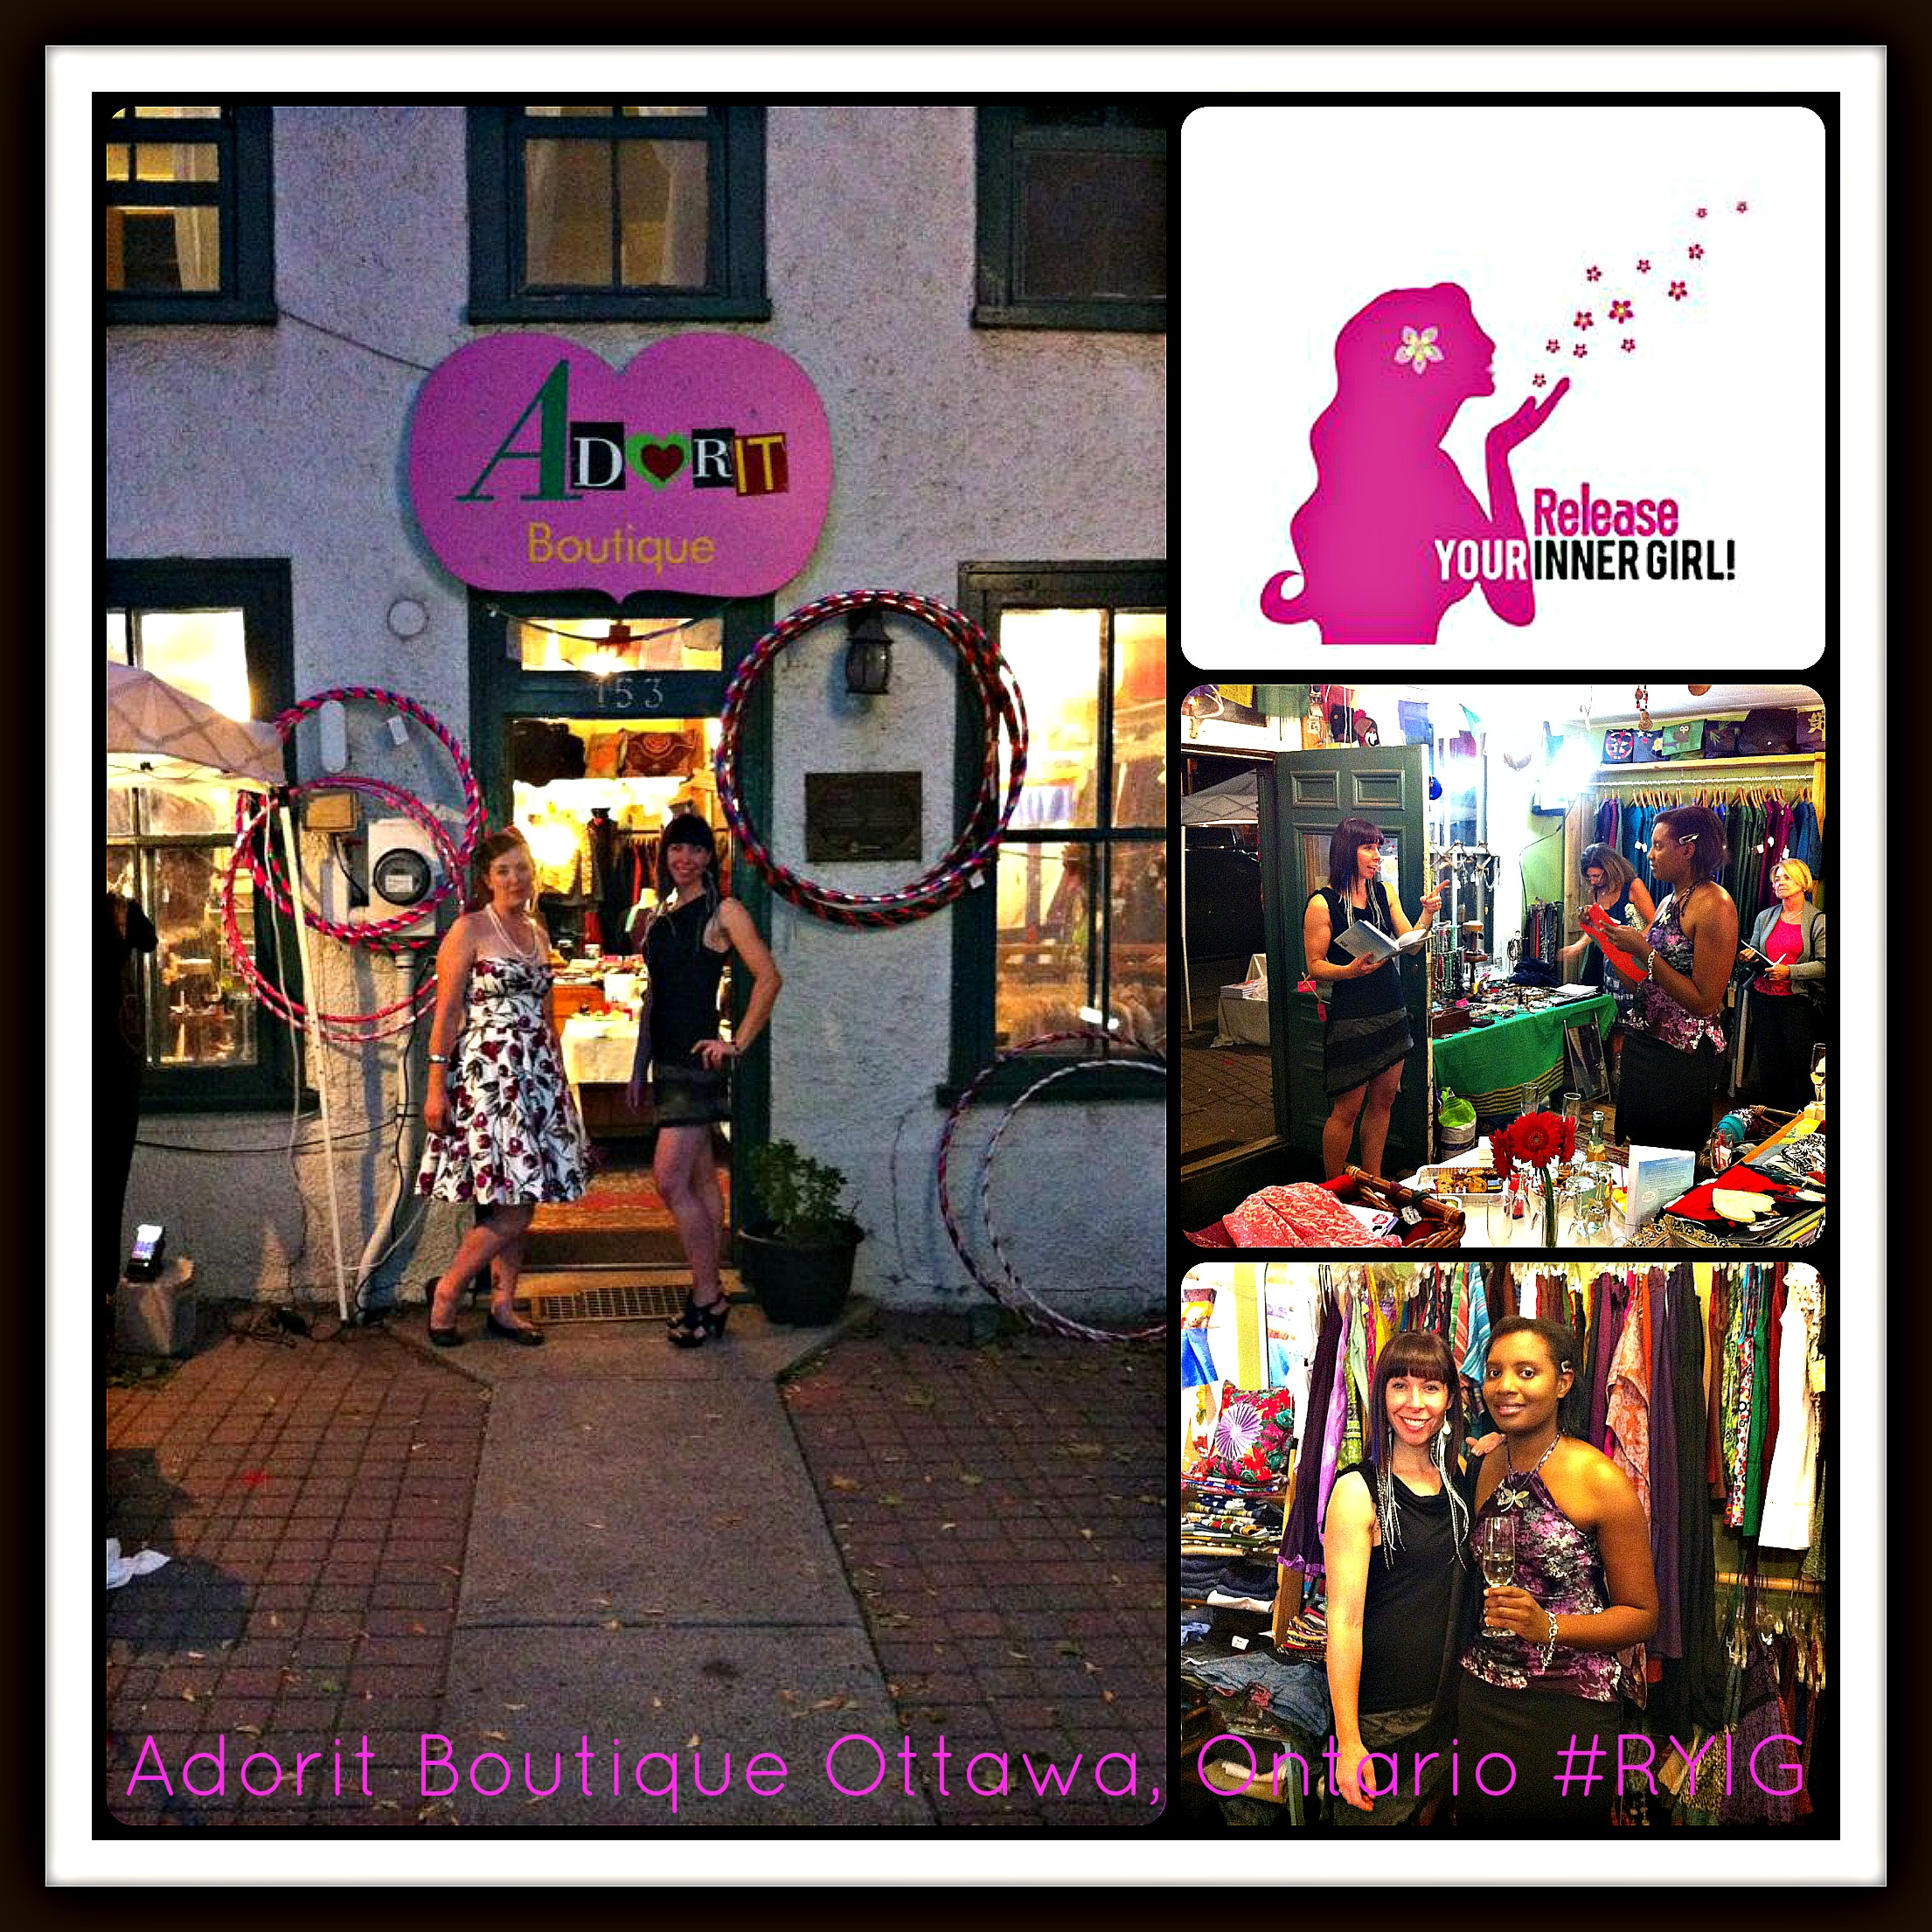 Clothing stores Chic clothing store